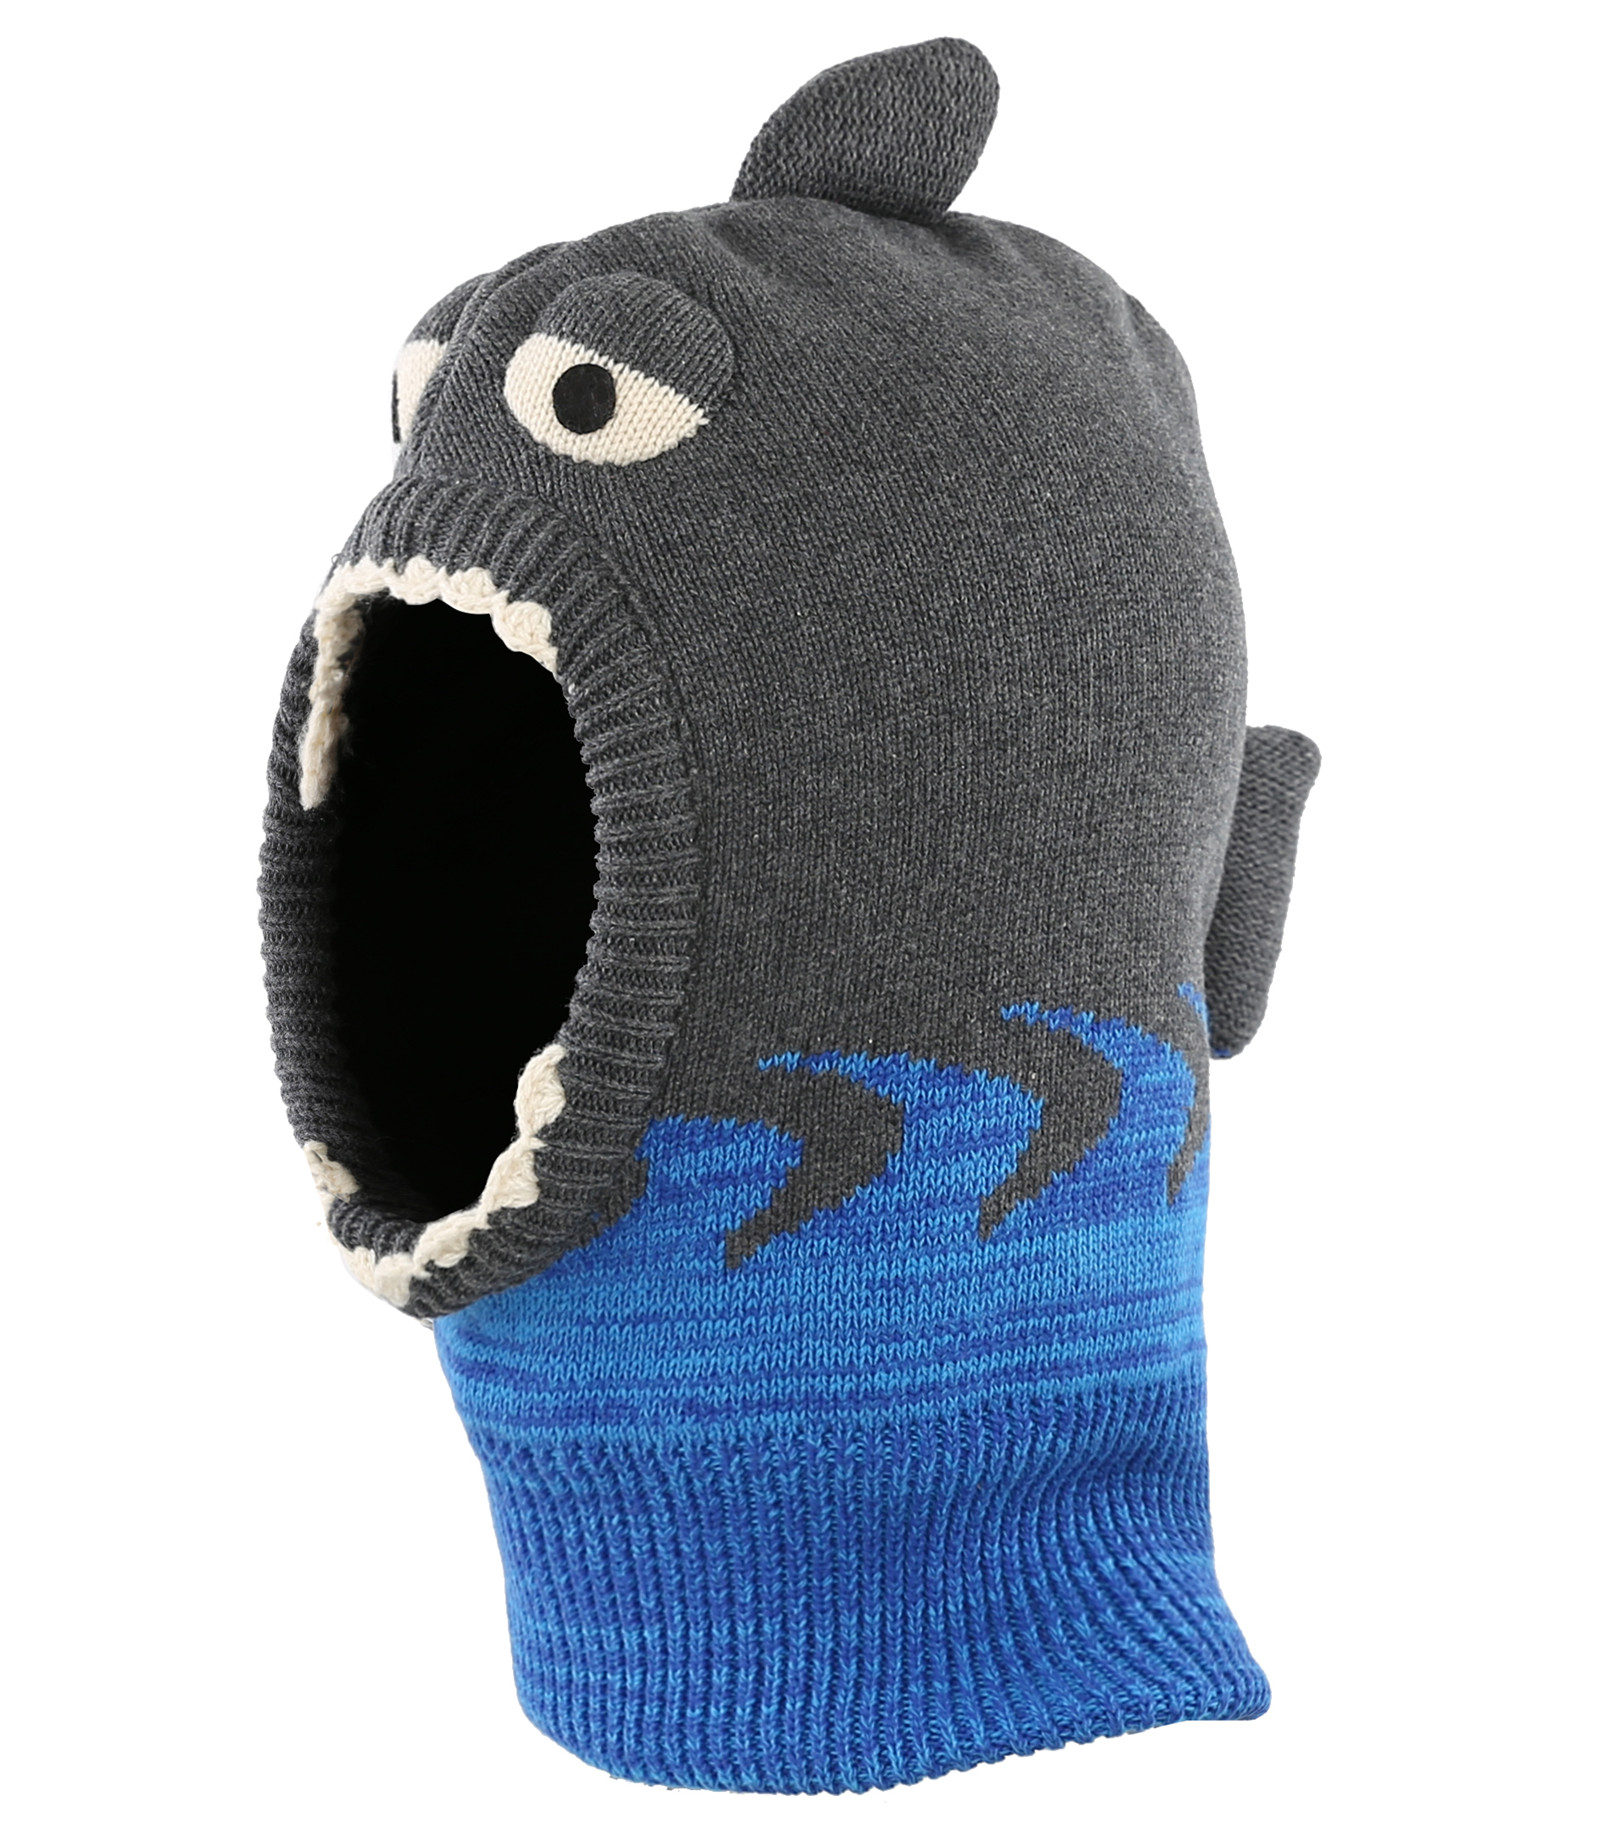 Connectyle Toddler Boys Girls Knit Winter Warm Hats Cute Cartoon Shark Fleece Lined Hood Scarf Beanies Hat For Kids